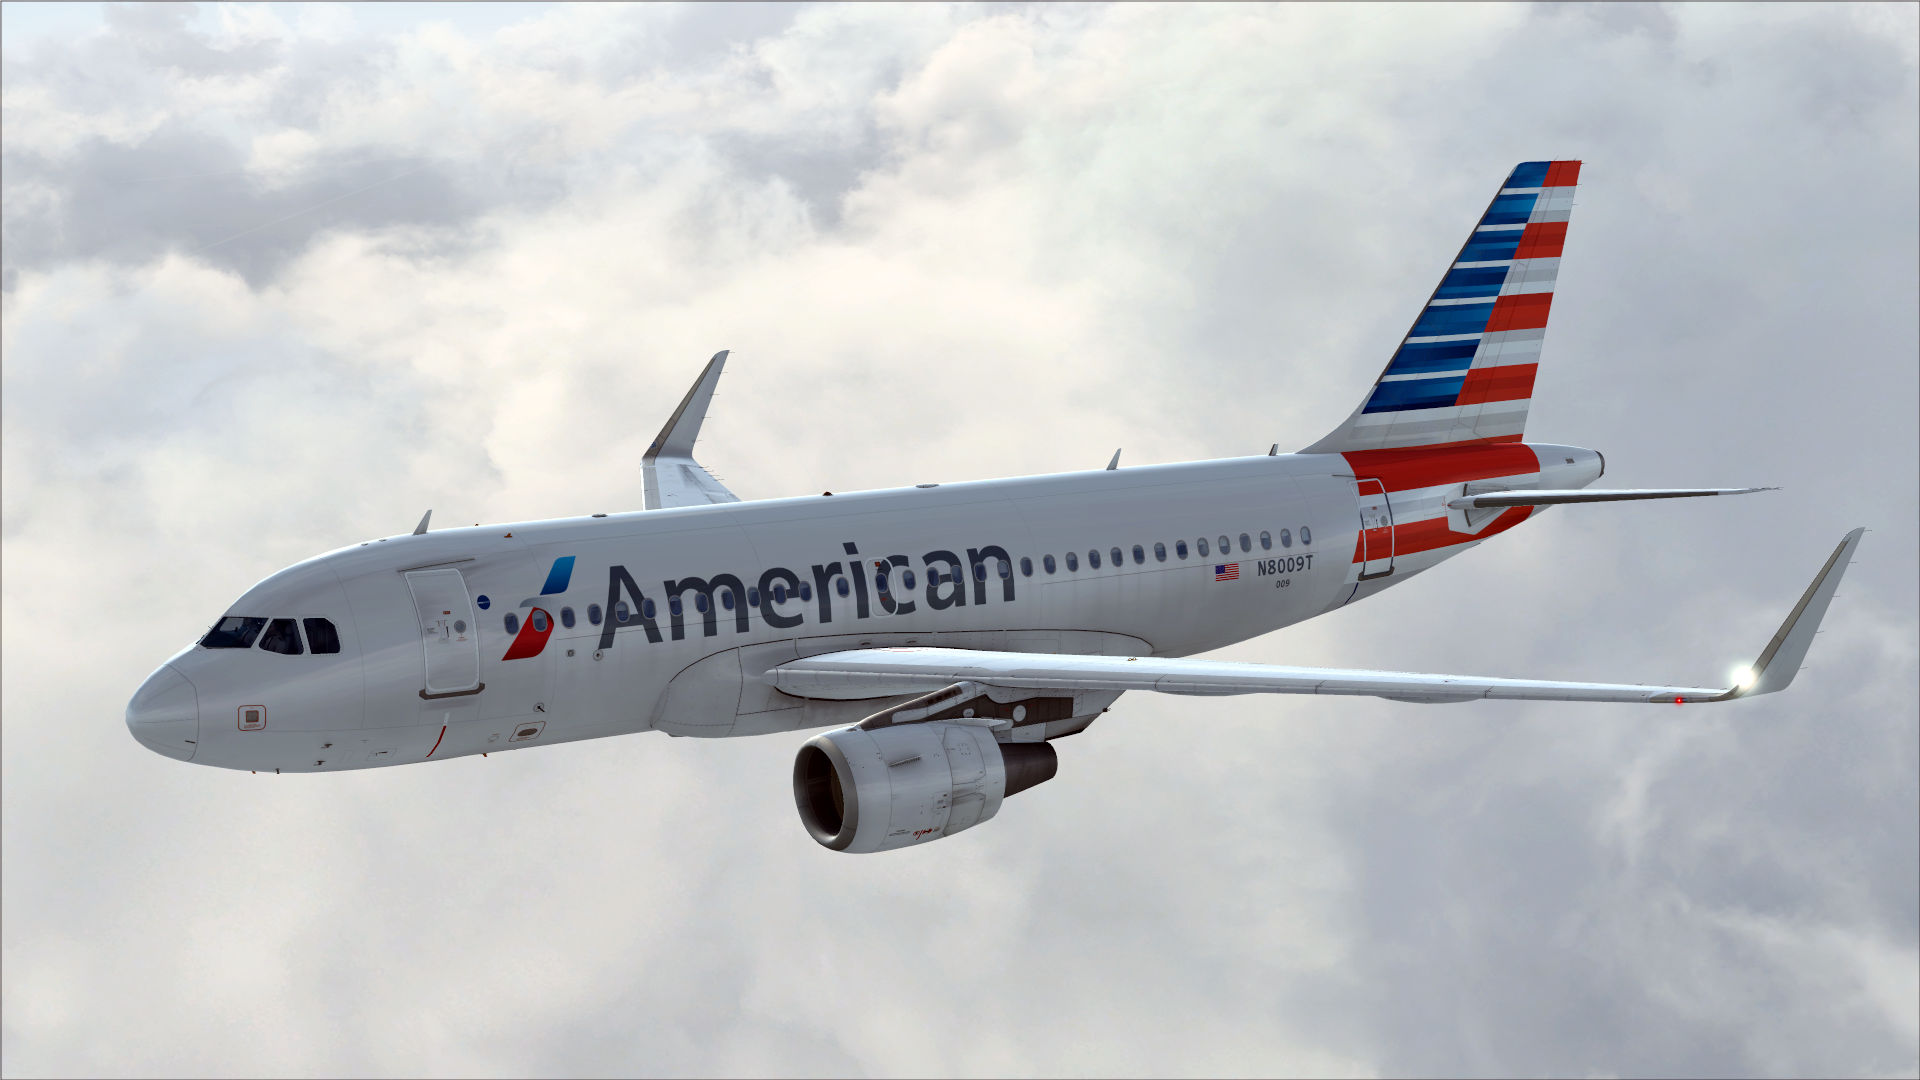 beautiful-american-airlines-high-resolution-wallpaper-for-desktop-background-download-free-desktop-wallpaper-stock-photos-desktop-images-for-apple-1920x1080